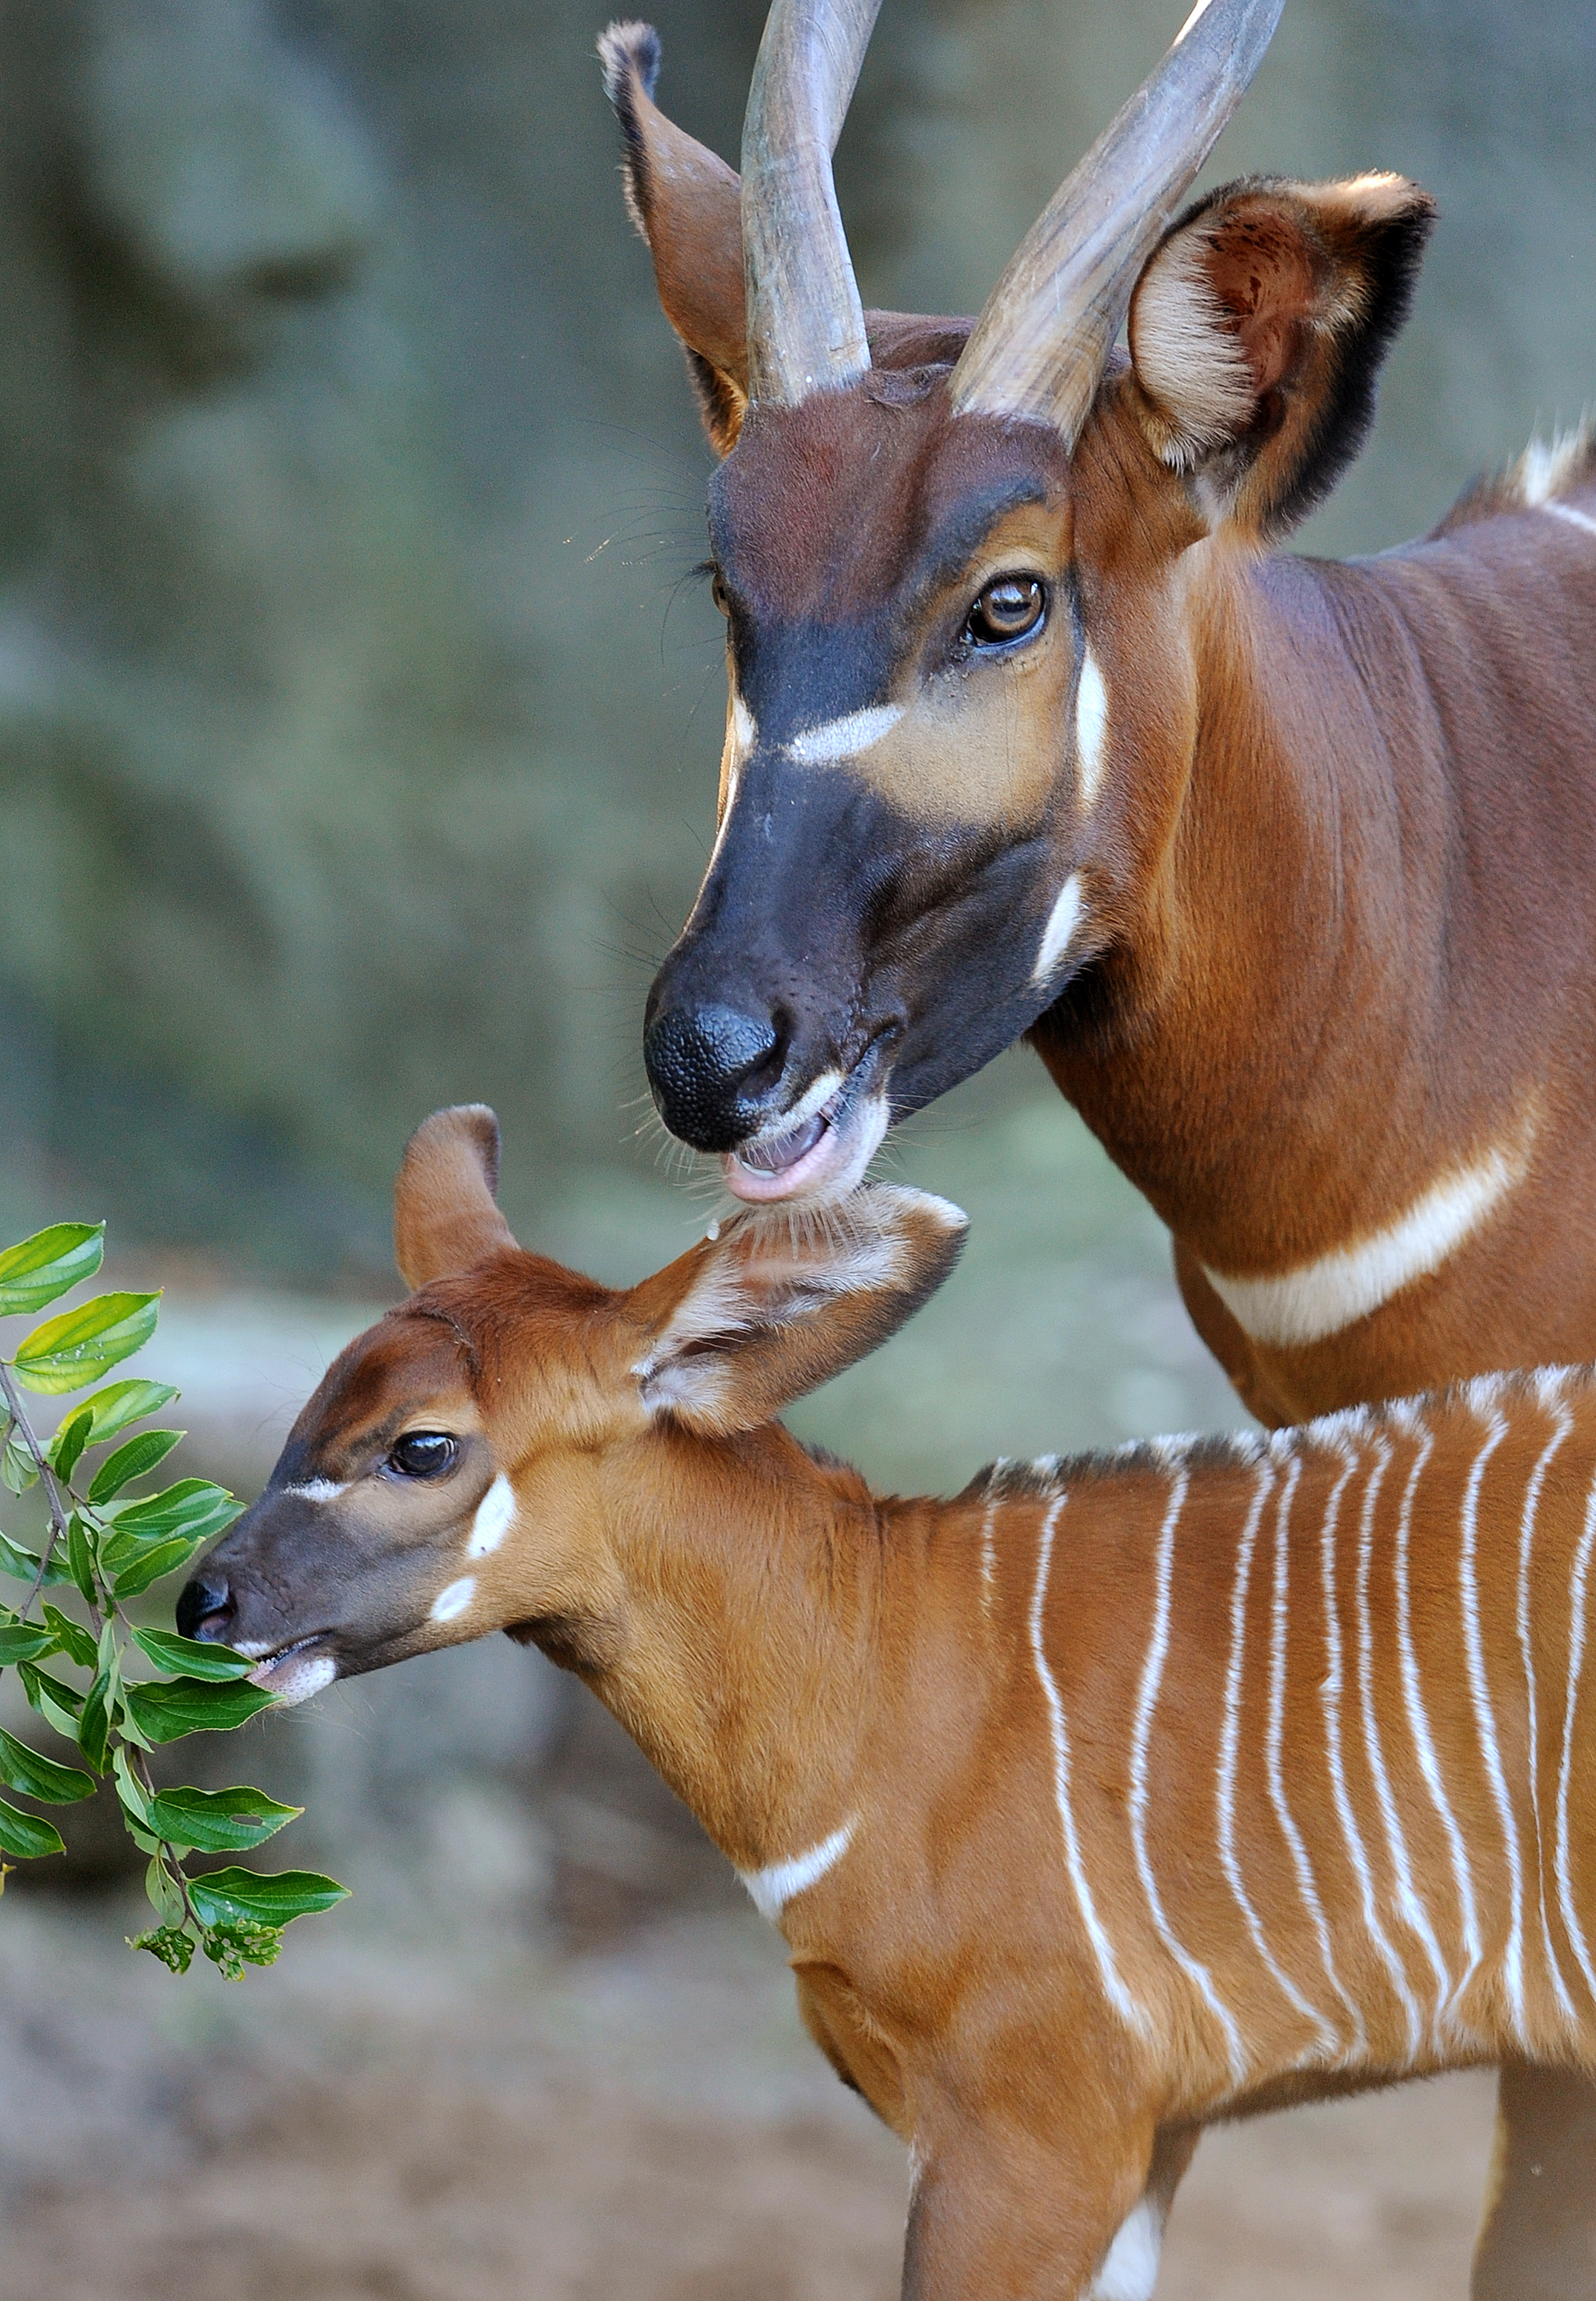 A two week-old Eastern Bongo calf stands beside her mother at Sydney's Taronga Zoo on April 13, 2012.